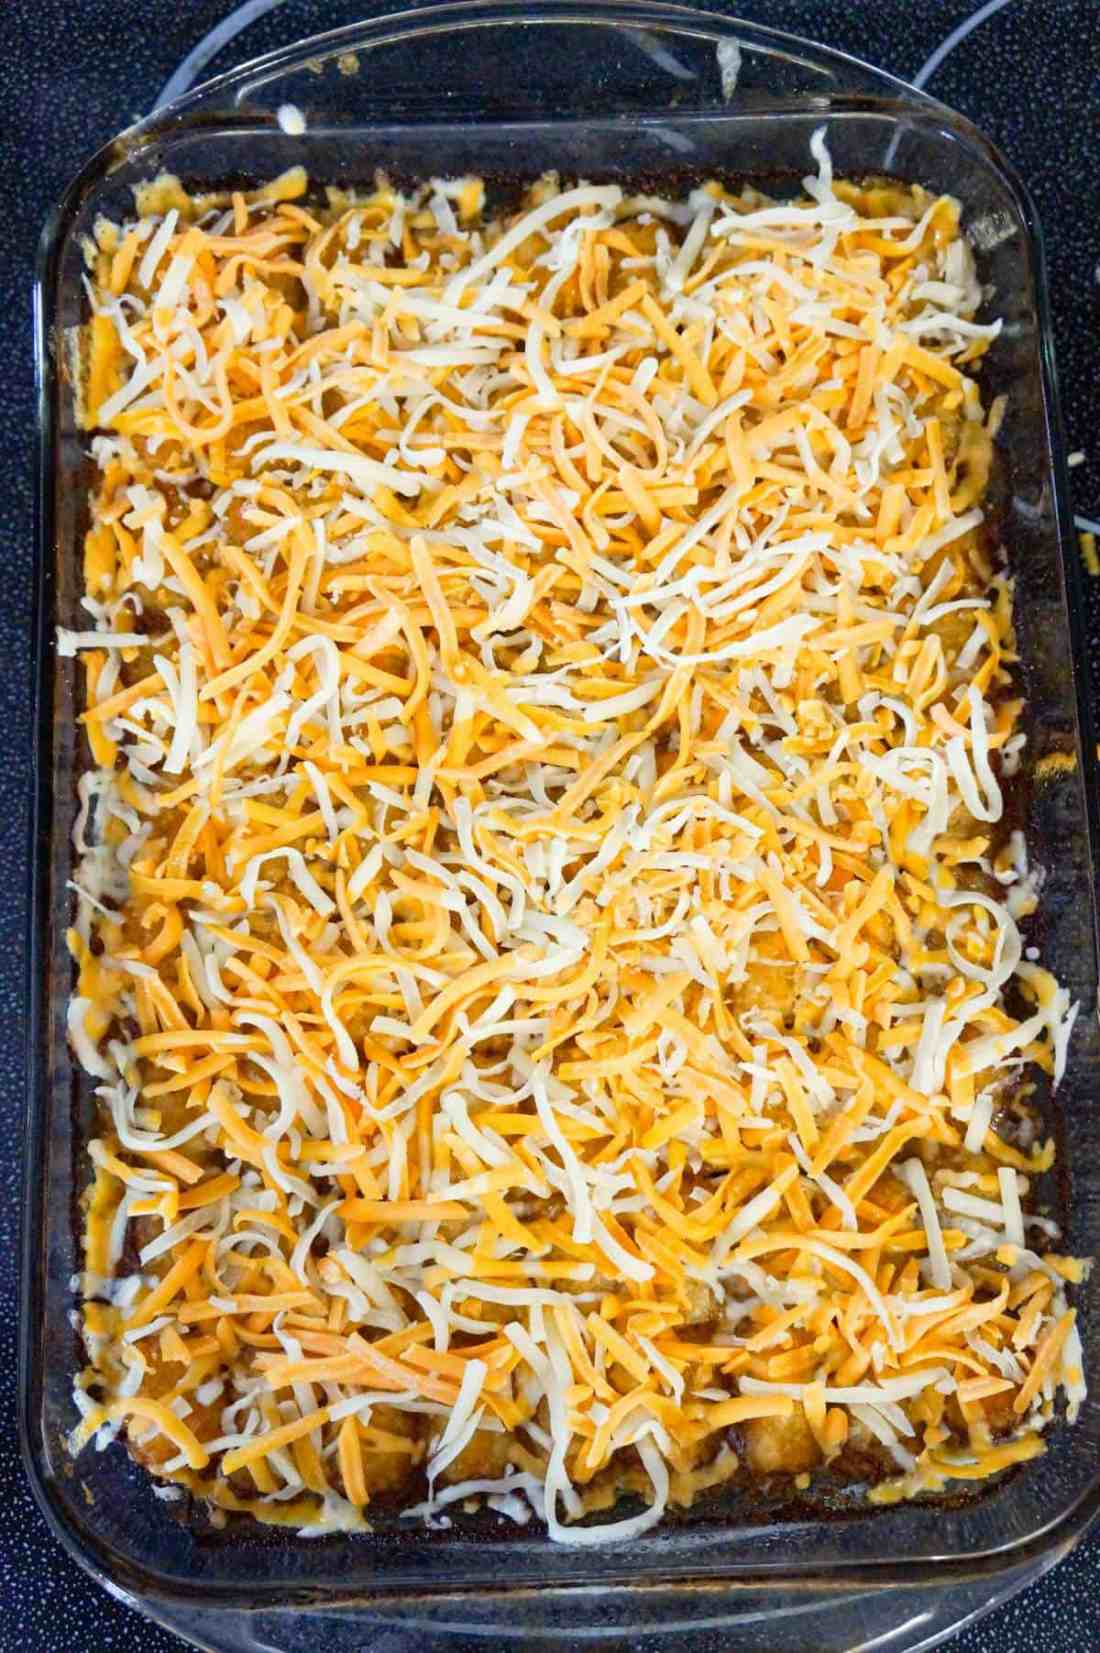 shredded mozzarella and cheddar cheese on top of tater tot casserole